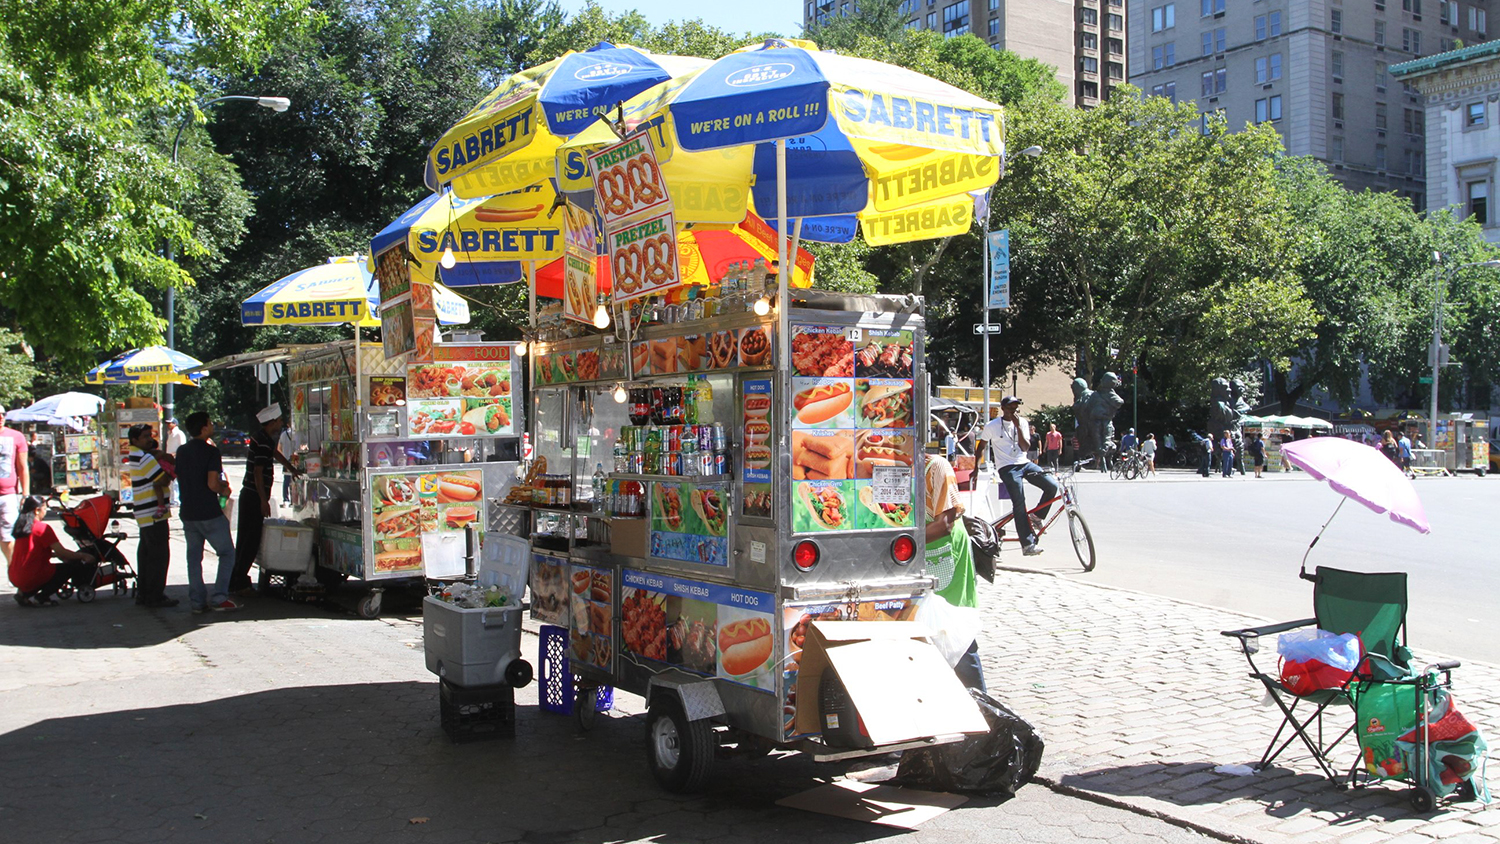 street food vendor in NYC